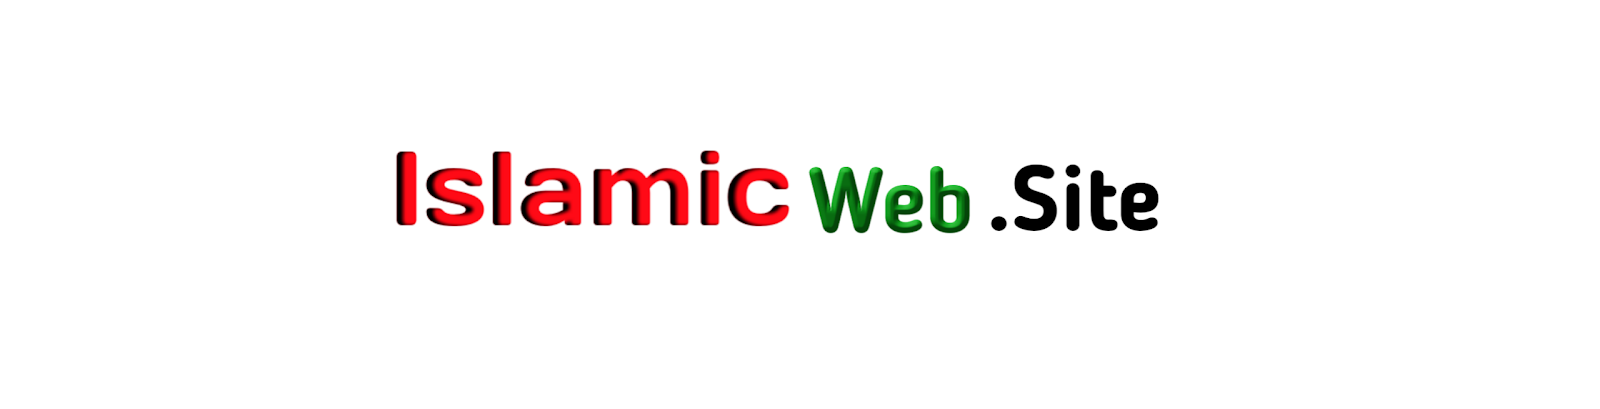 Islamicweb.site - islamic website | largest english & hindi Roman हिंदी hadith sharif website